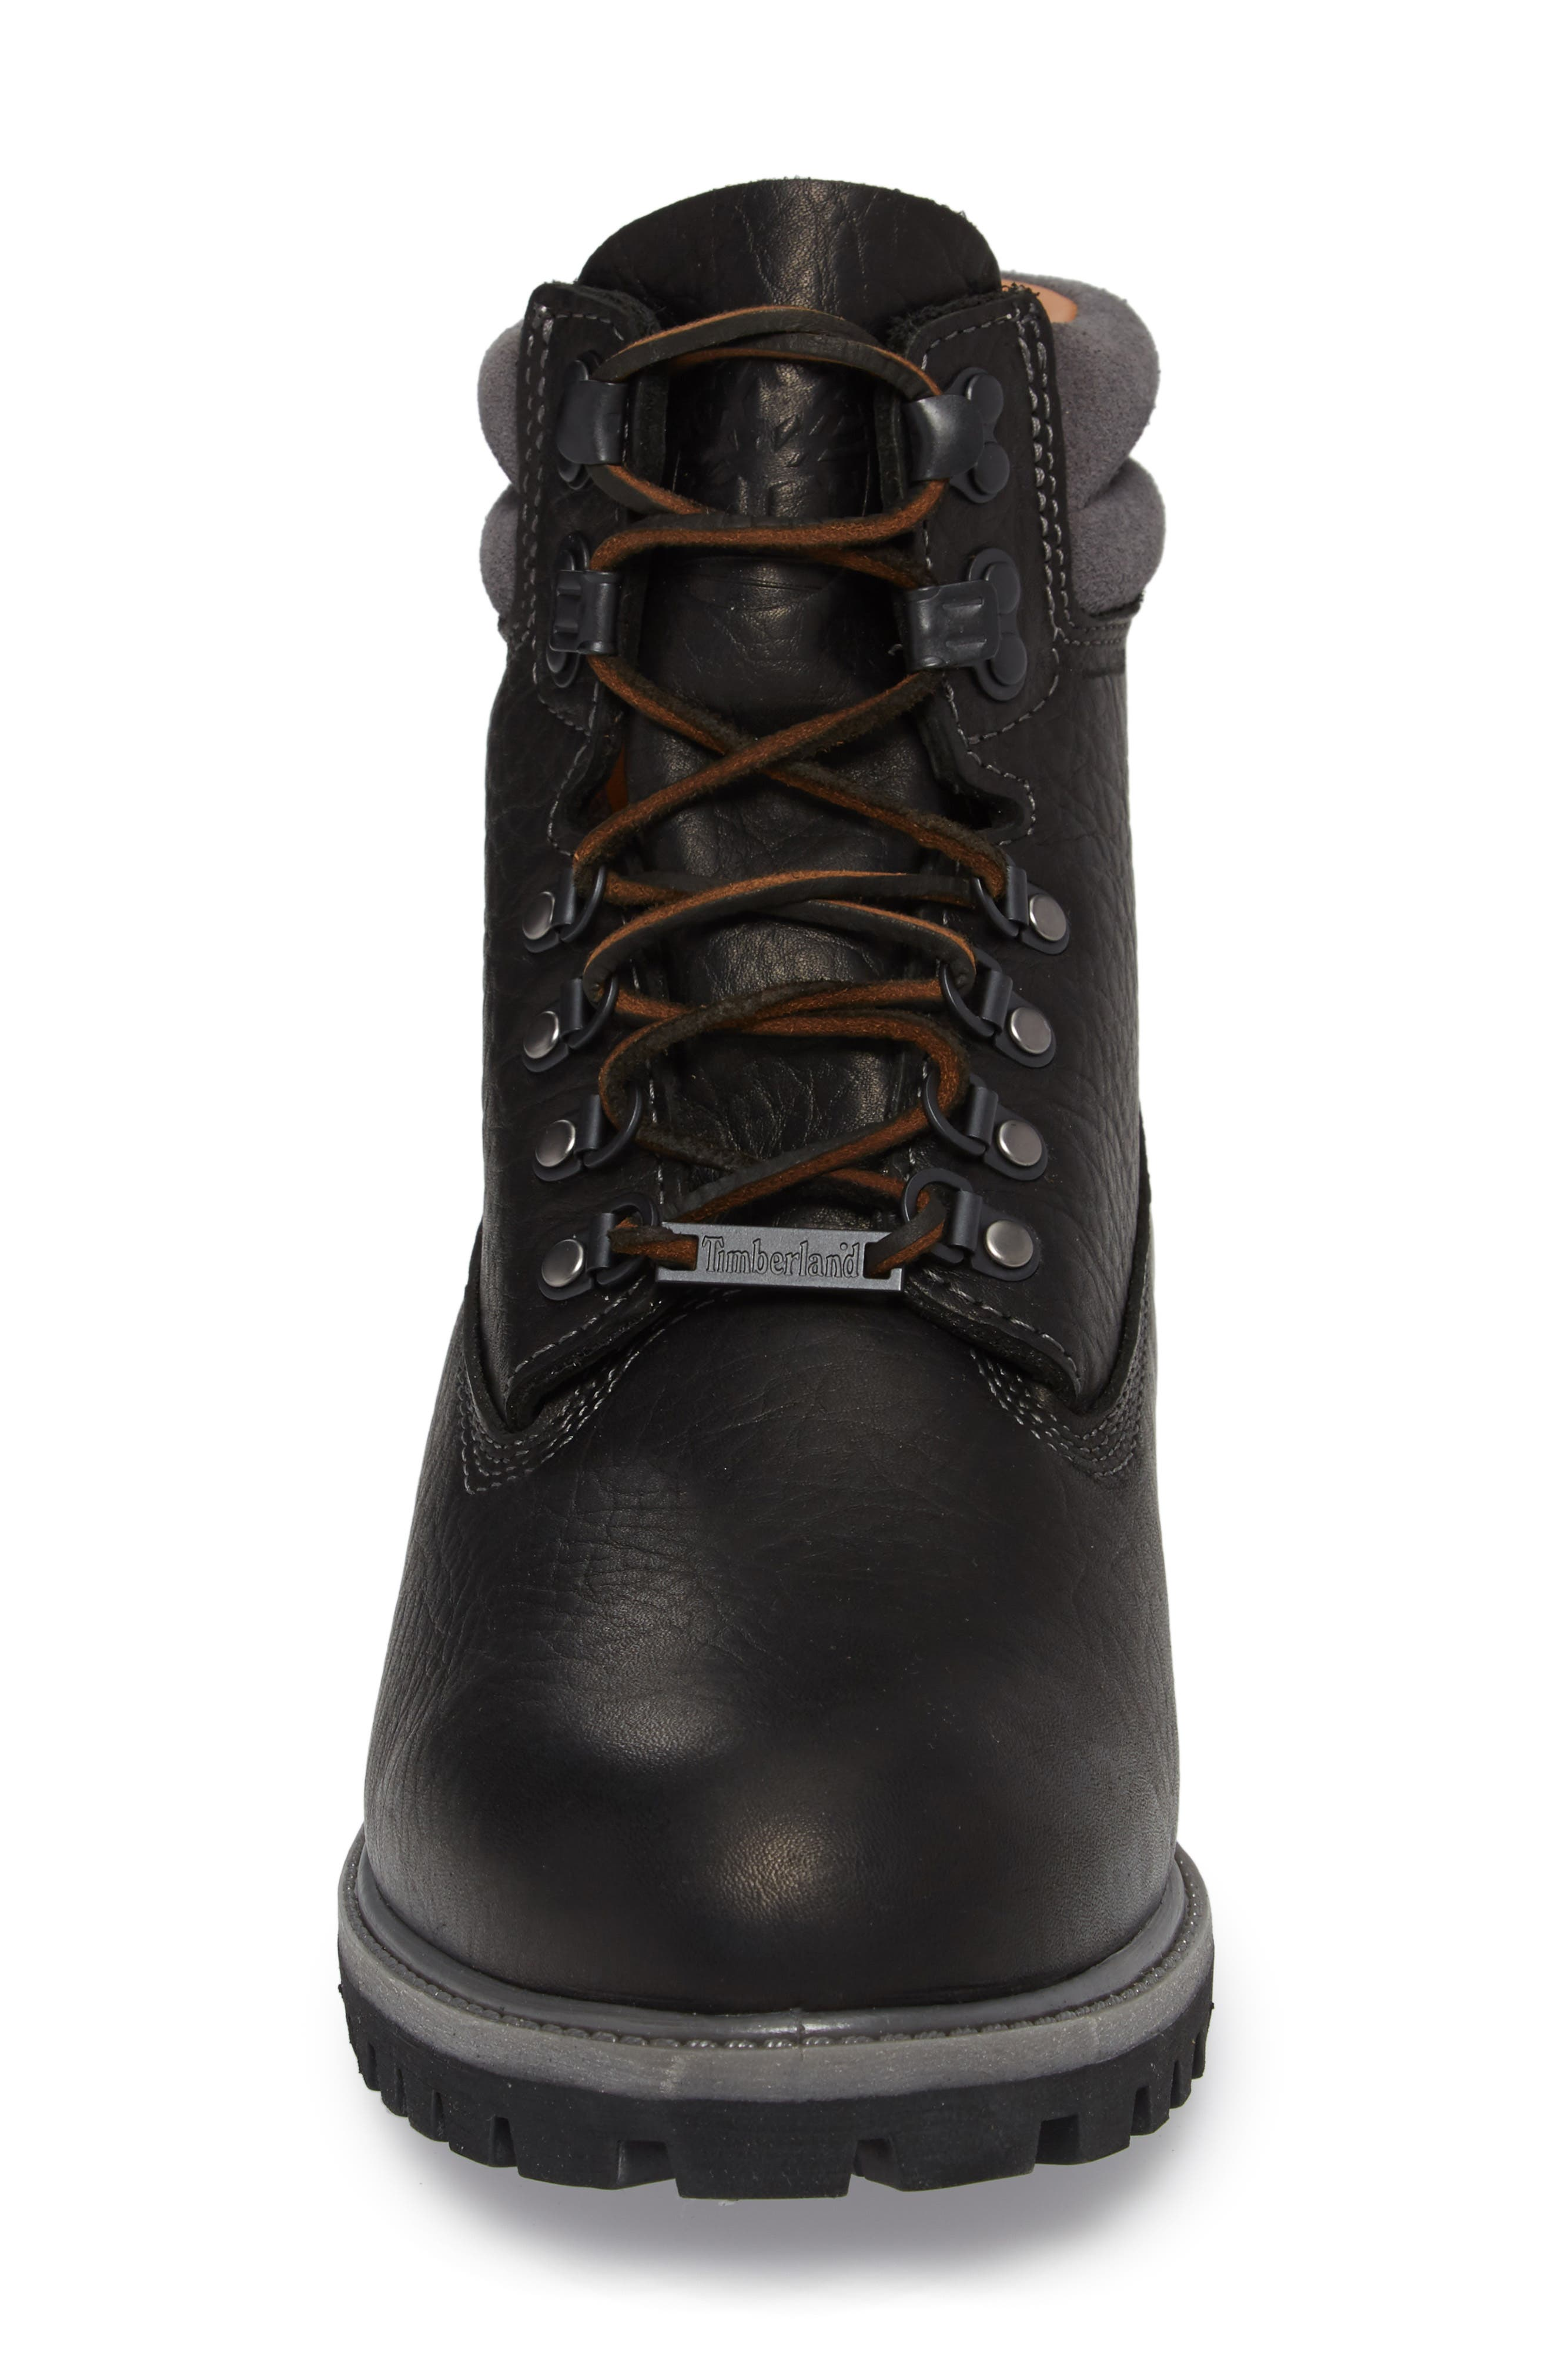 640 Below Plain Toe Boot,                             Alternate thumbnail 4, color,                             Black Highway Leather